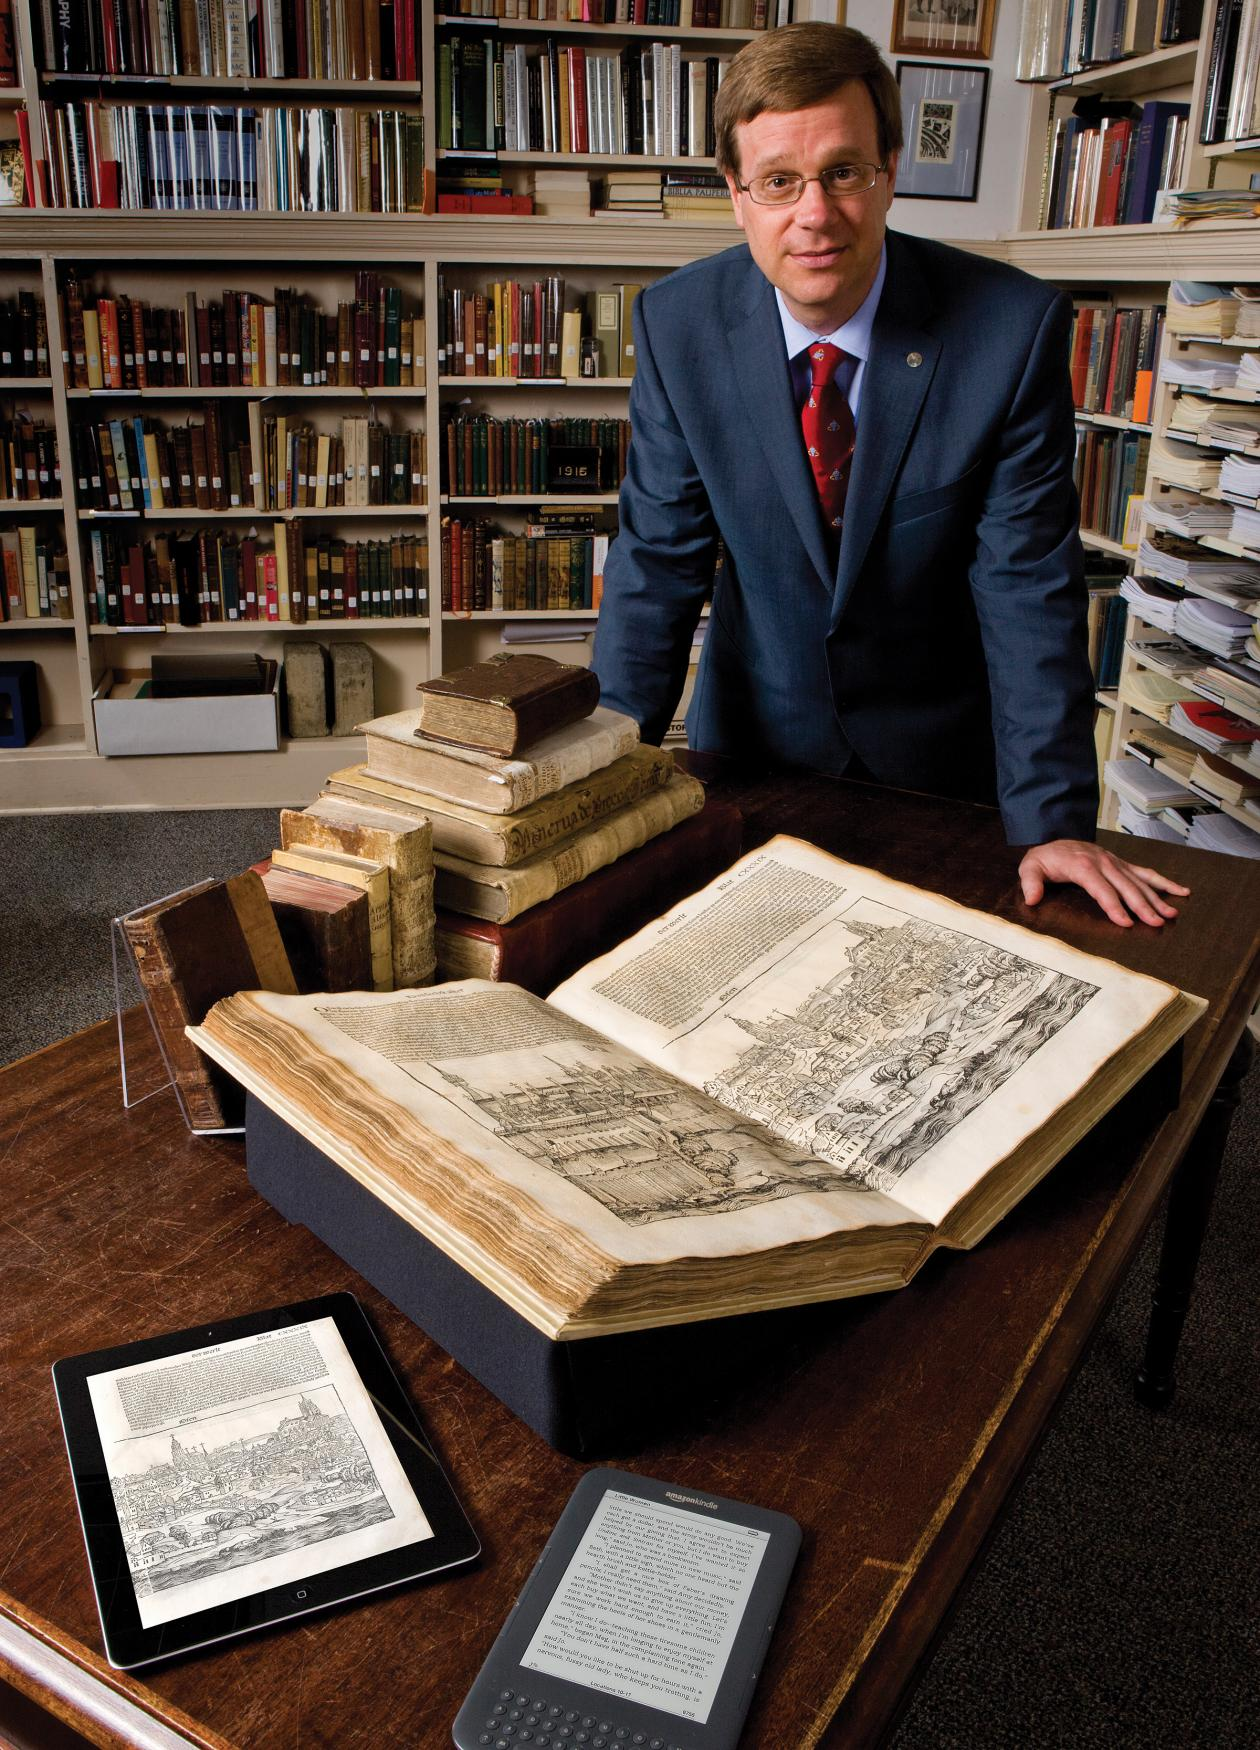 Photo of a man in a suit leaning over a rare book in a library, while looking at the camera.